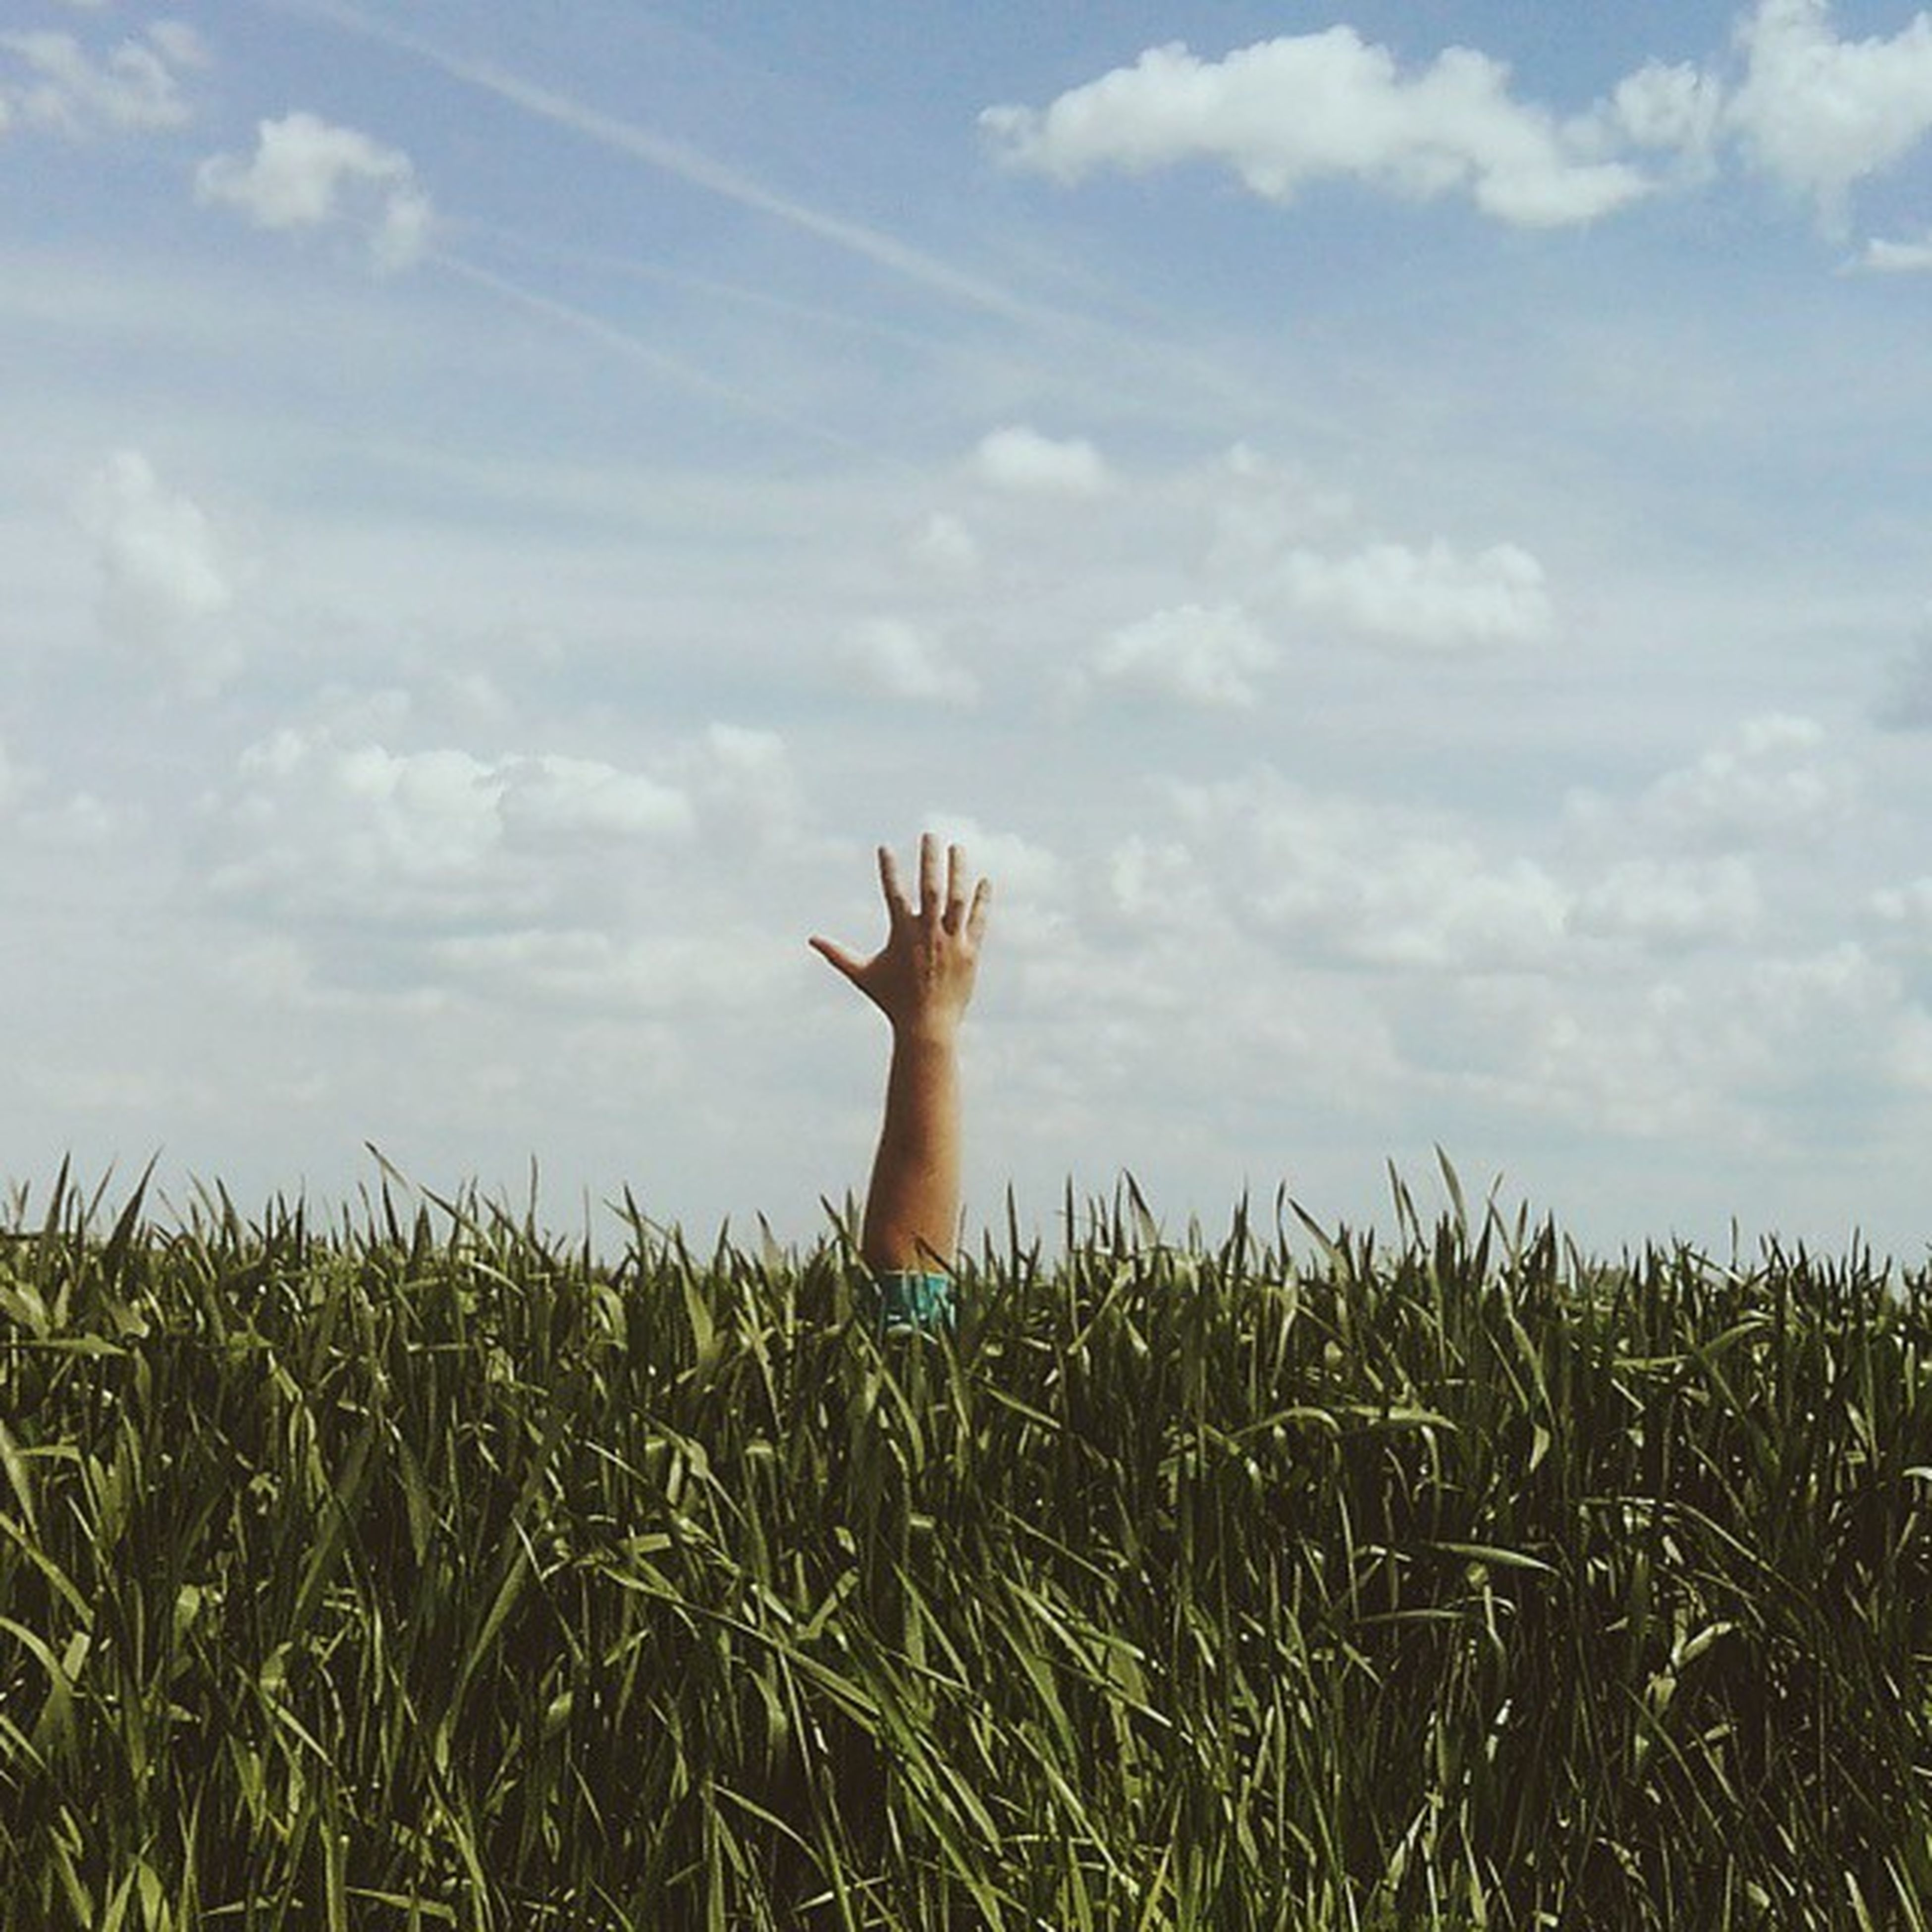 grass, sky, field, lifestyles, leisure activity, grassy, person, nature, tranquility, plant, beauty in nature, growth, cloud - sky, tranquil scene, green color, standing, outdoors, scenics